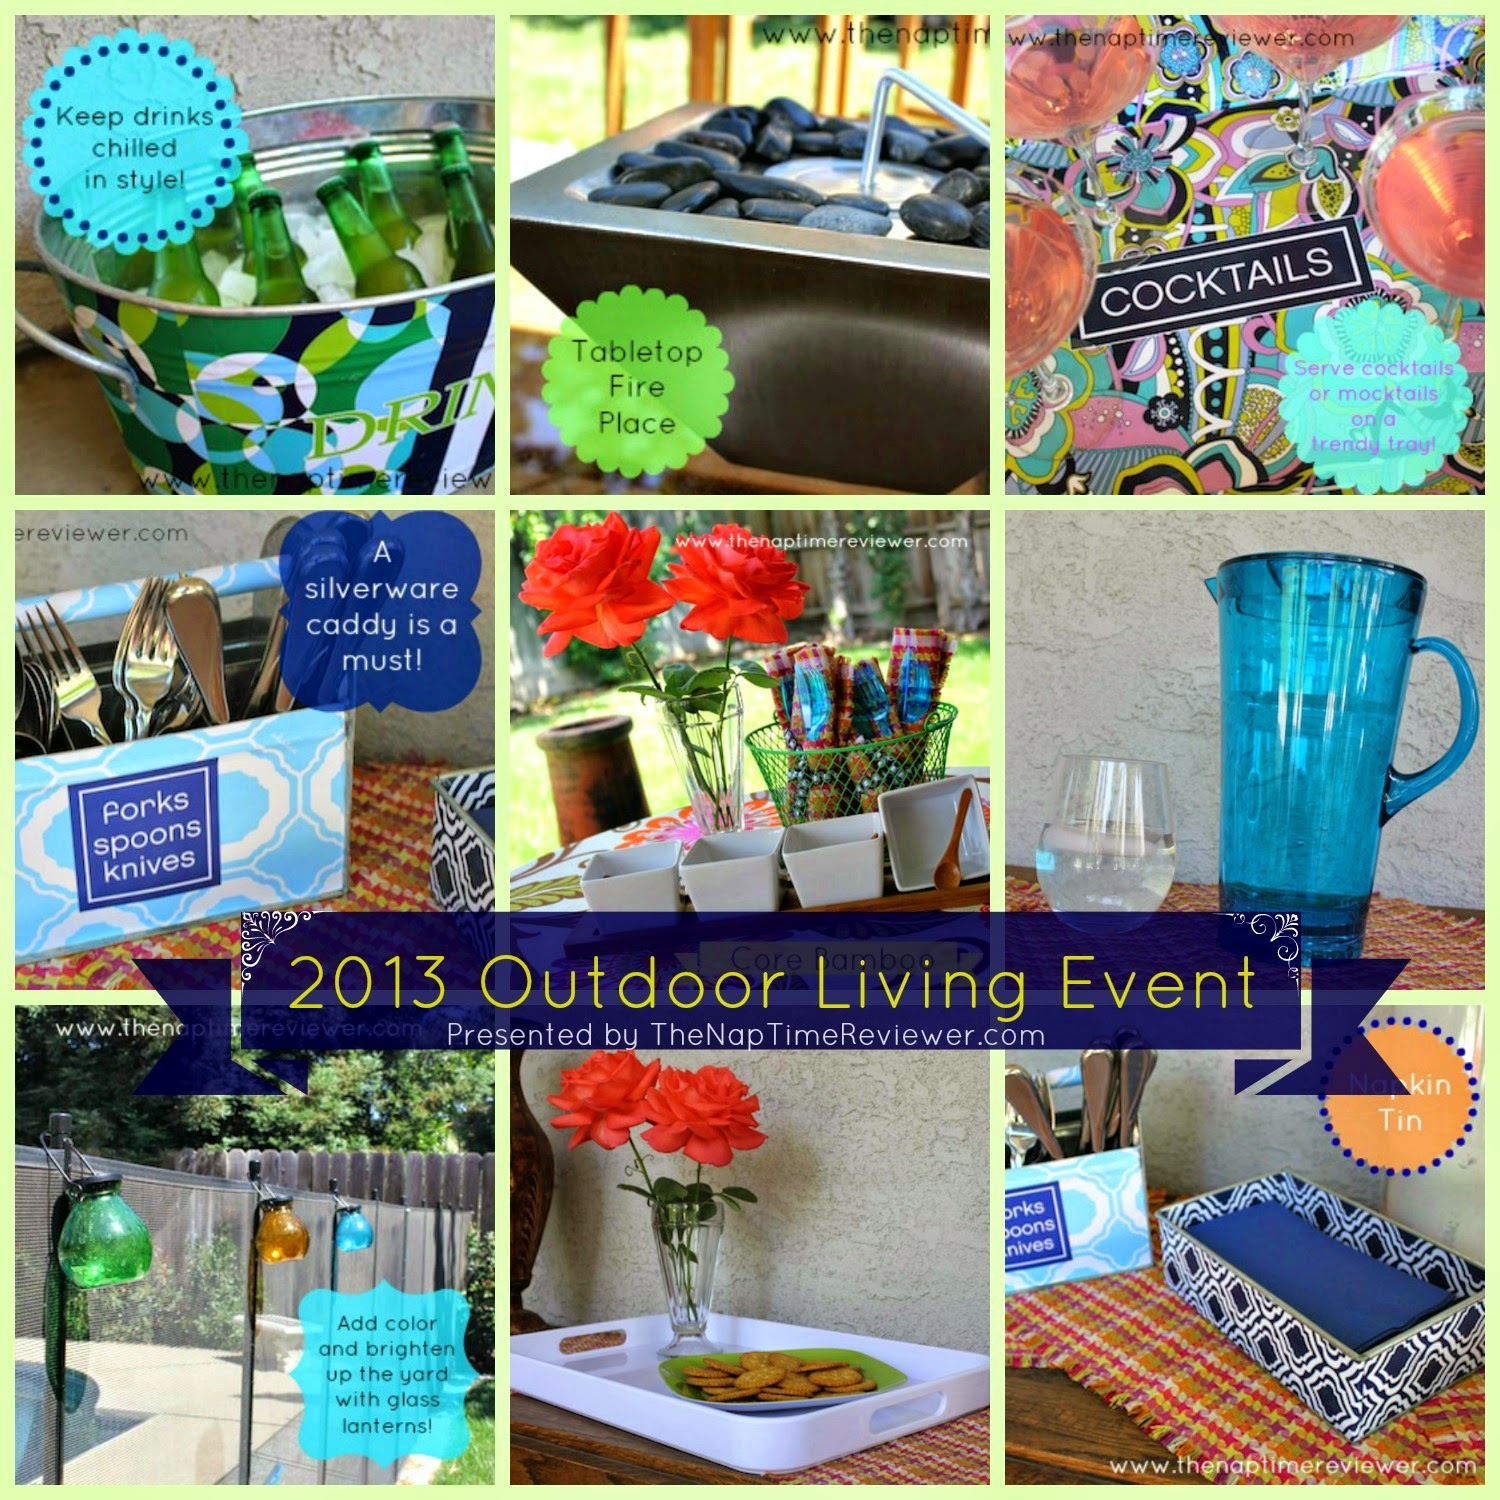 2013 Outdoor Living Event